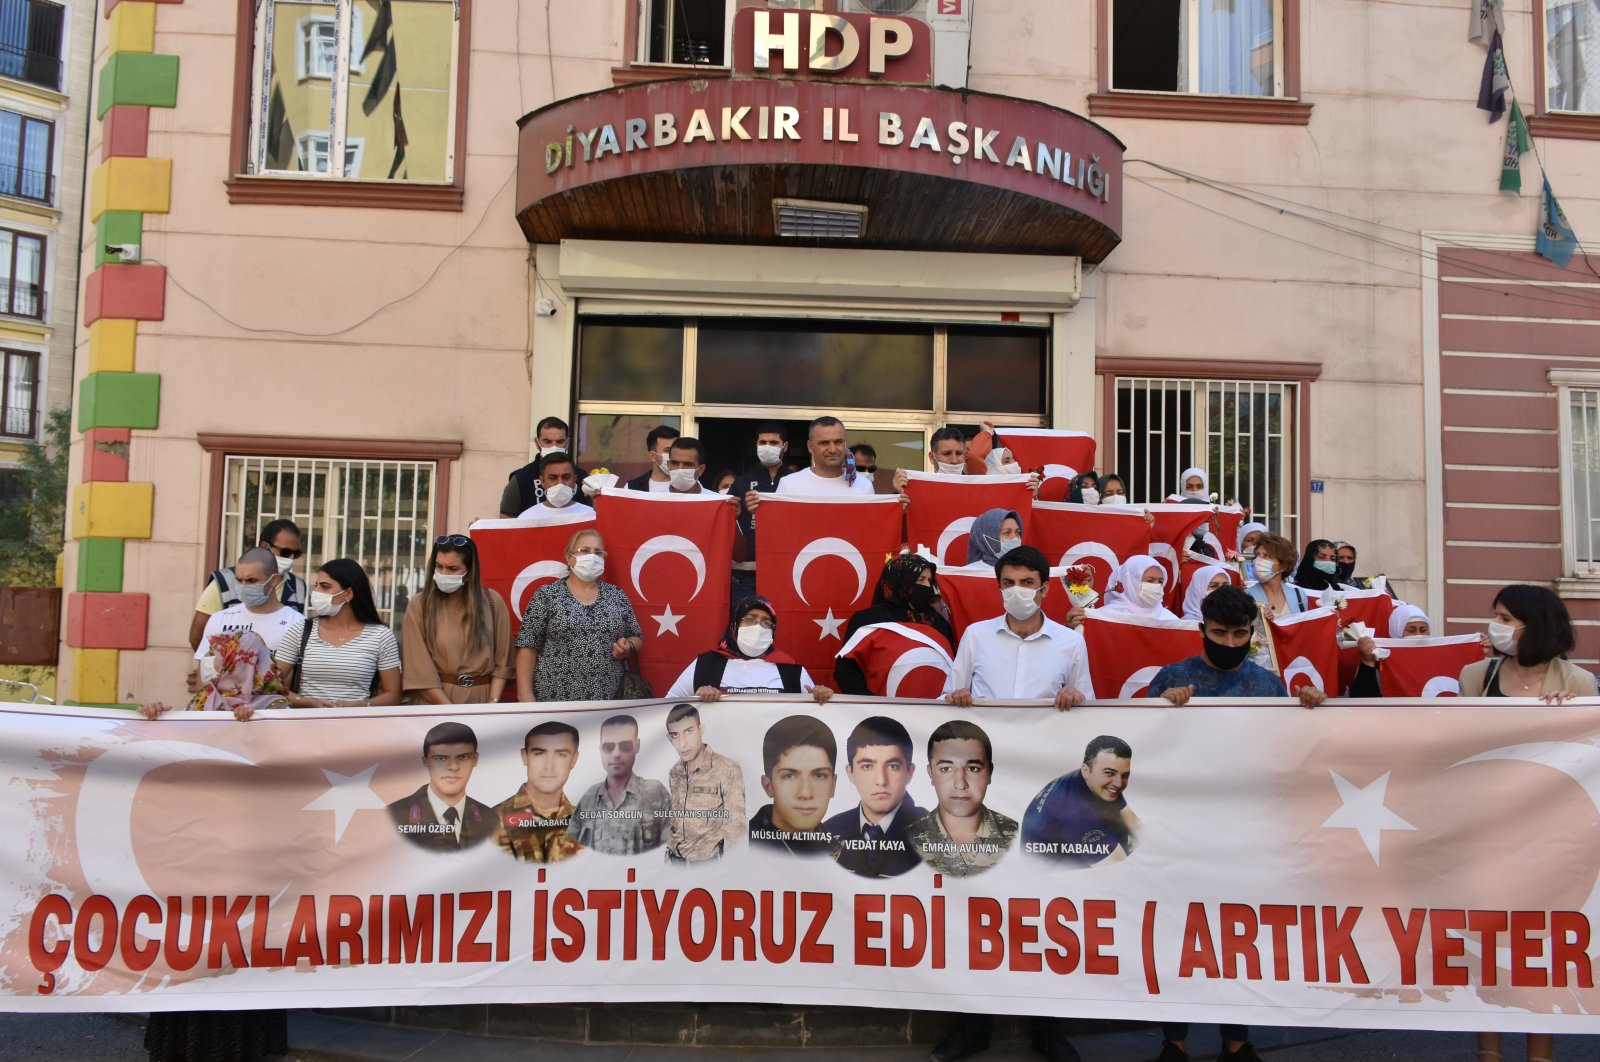 """Families protesting PKK in front of the HDP headquarters in Diyarbakır hold a banner with the pictures of kidnapped children and writing saying """"We want our children back, enough"""" on it, Sept. 3, 2020. (AA)"""